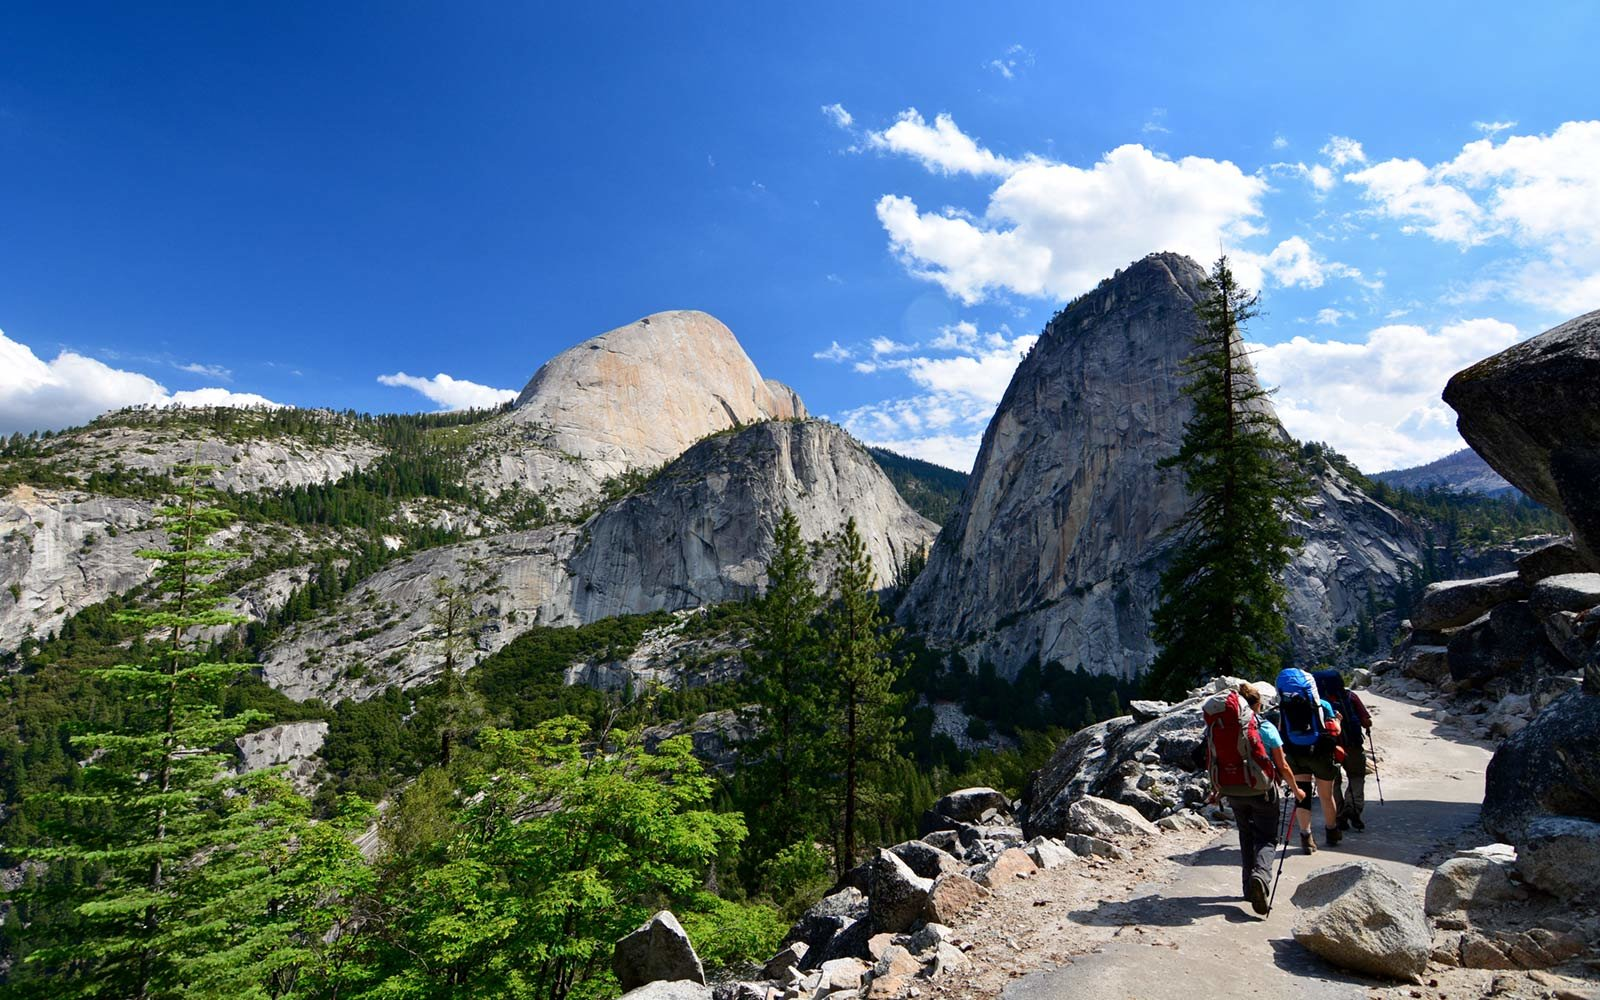 1. Yosemite National Park